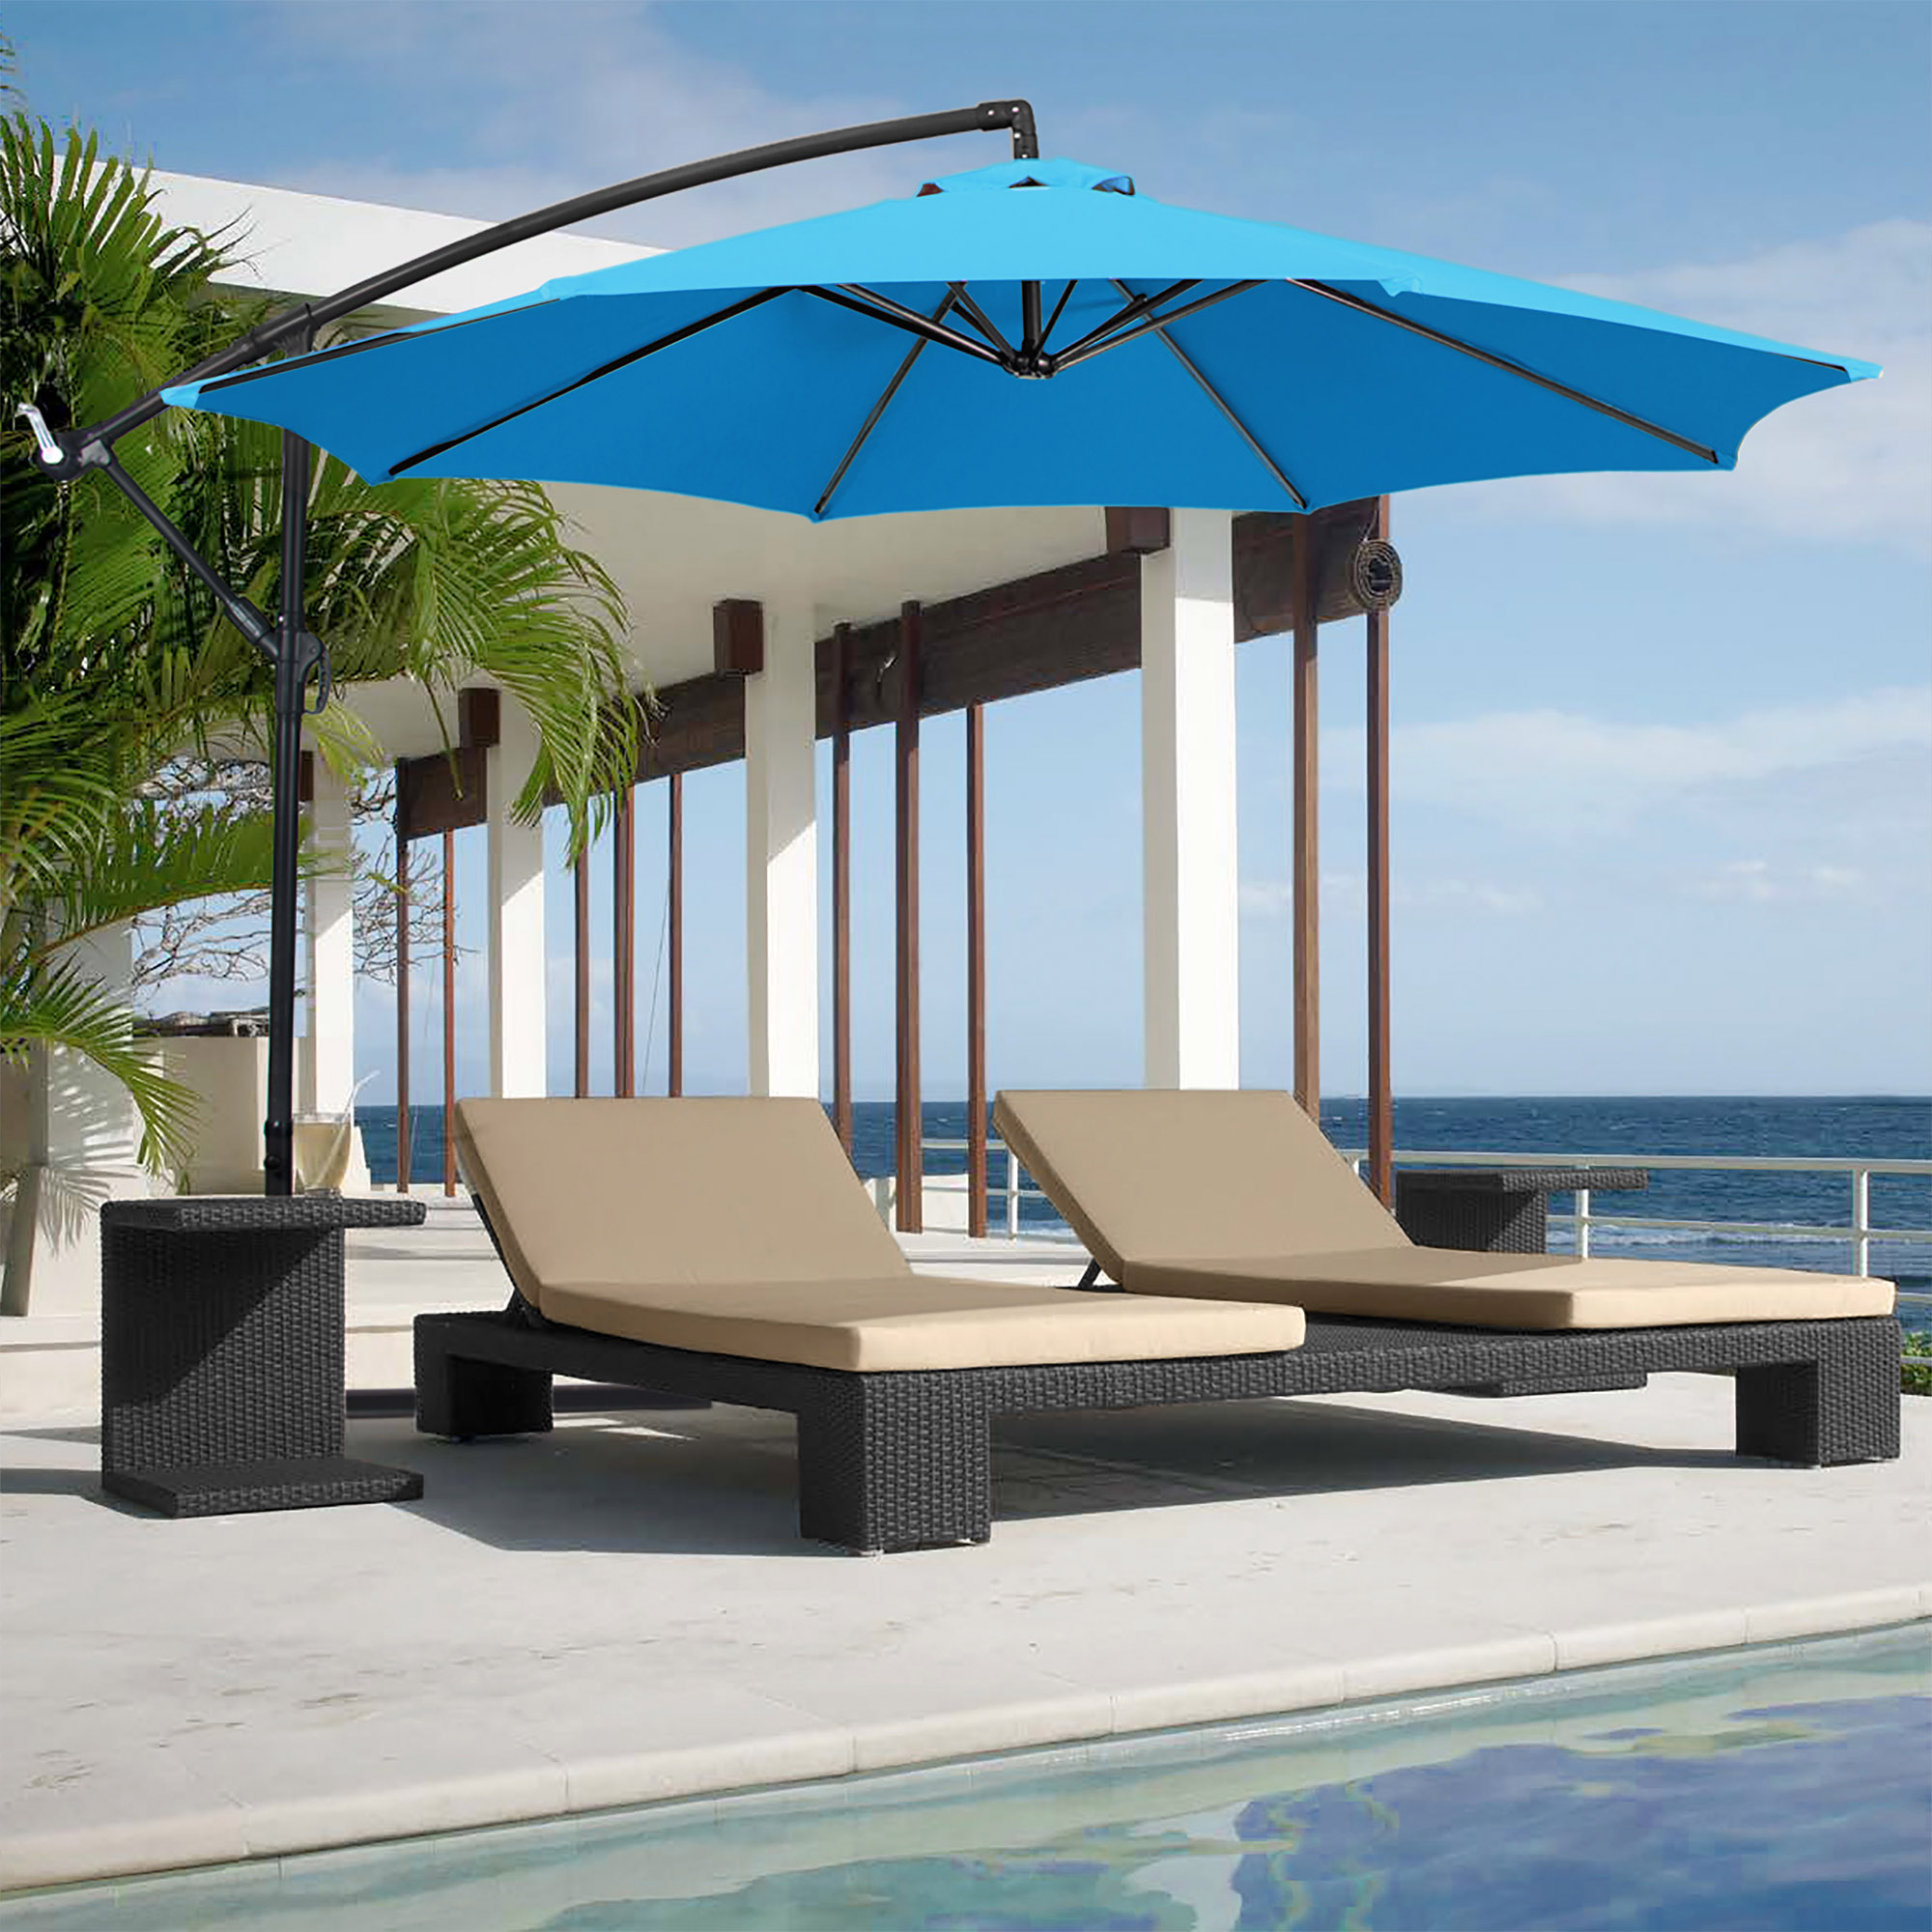 BCP-10ft-Offset-Hanging-Market-Patio-Umbrella-w-Tilt-Adjustment-Hand-Crank thumbnail 14